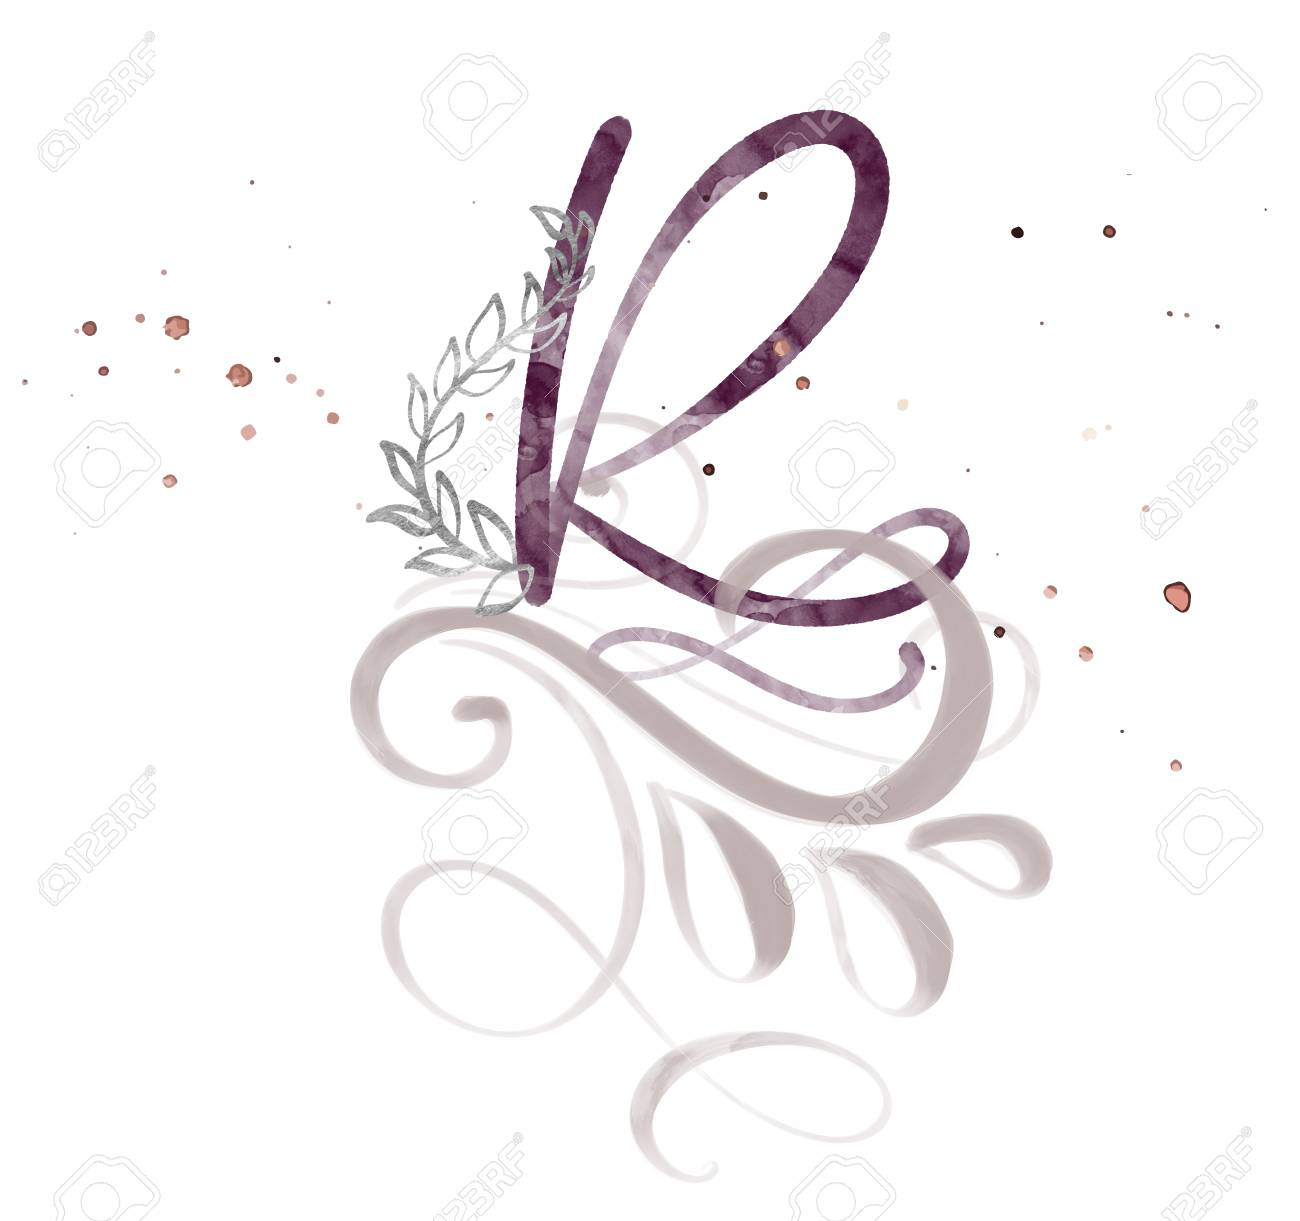 Hand Drawn Calligraphy Letter R. Watercolor Script Font. Isolated